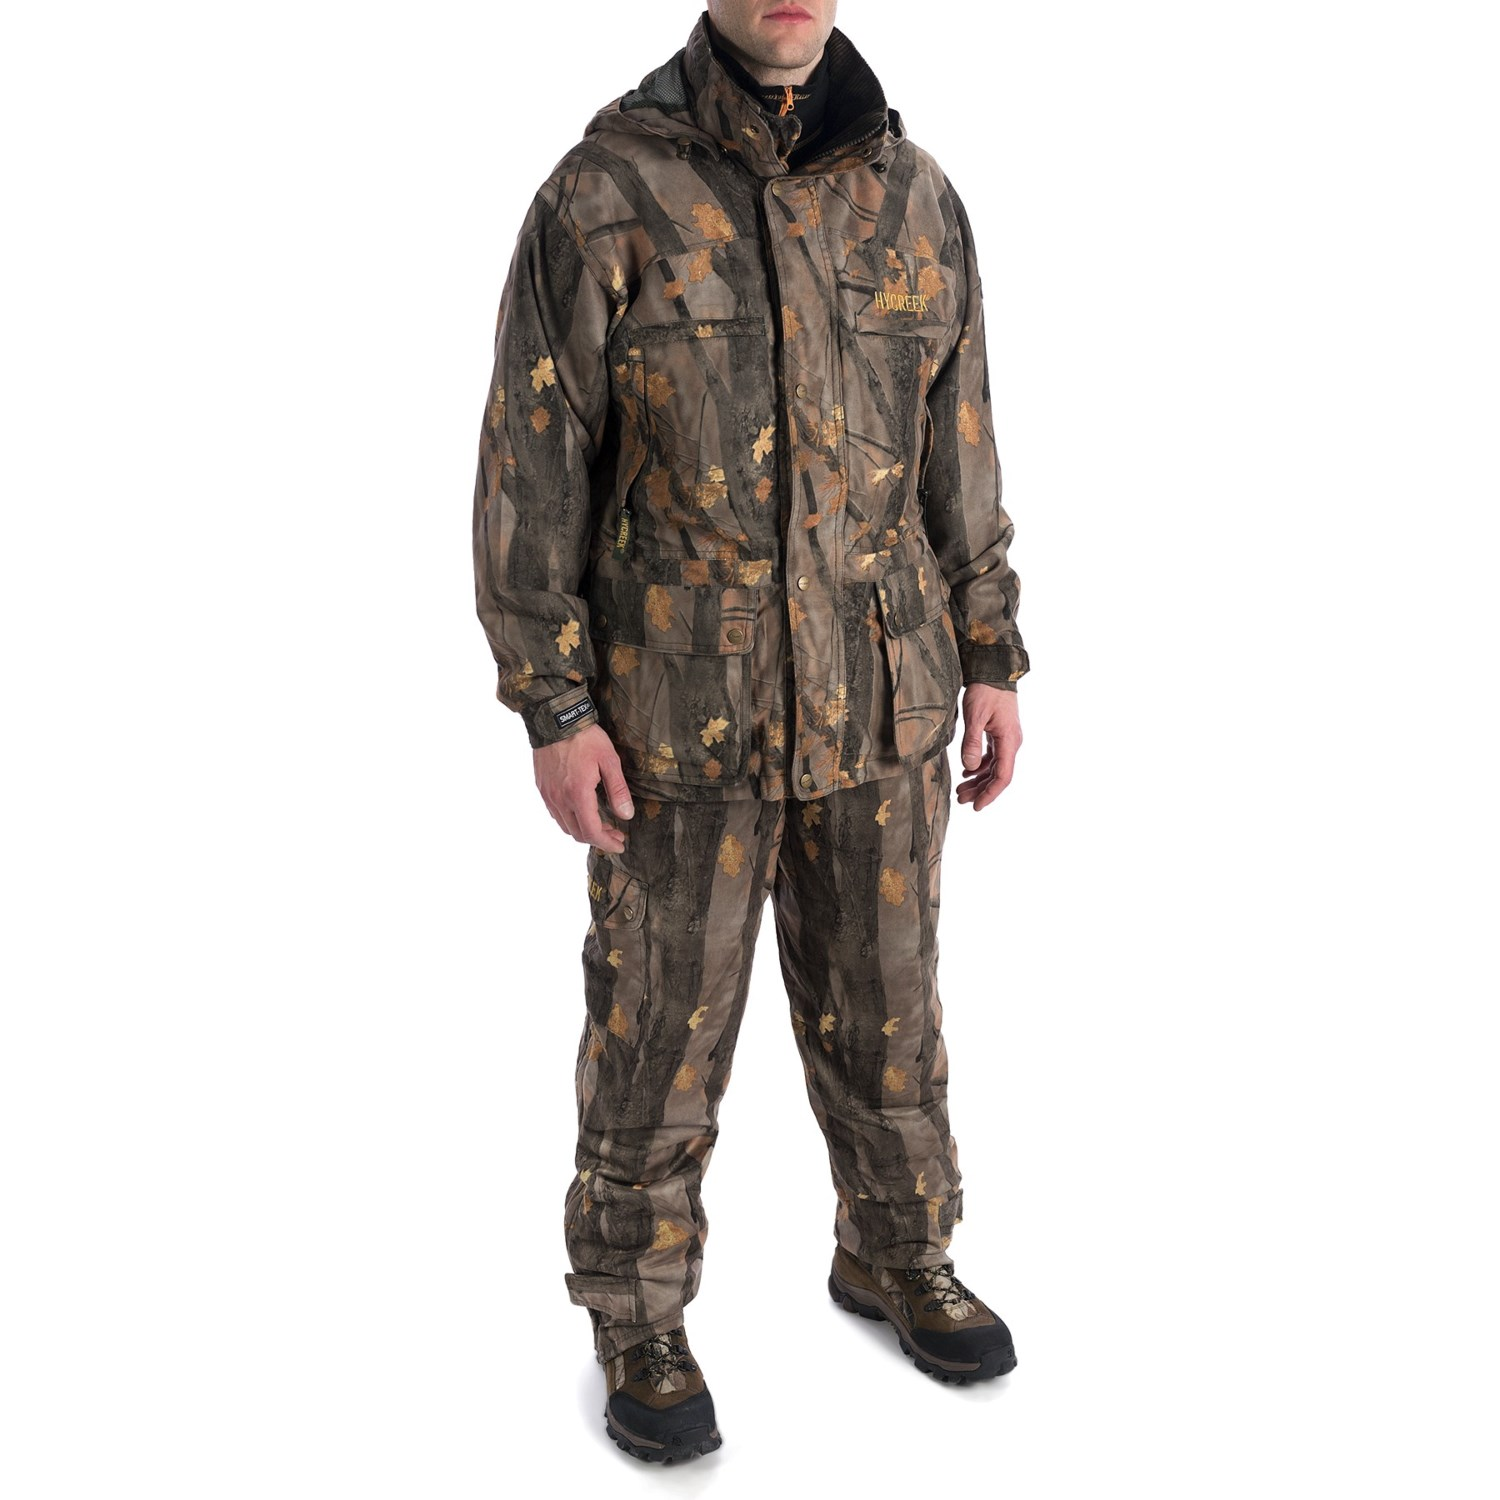 hycreek pro ii series big game camo hunting package with